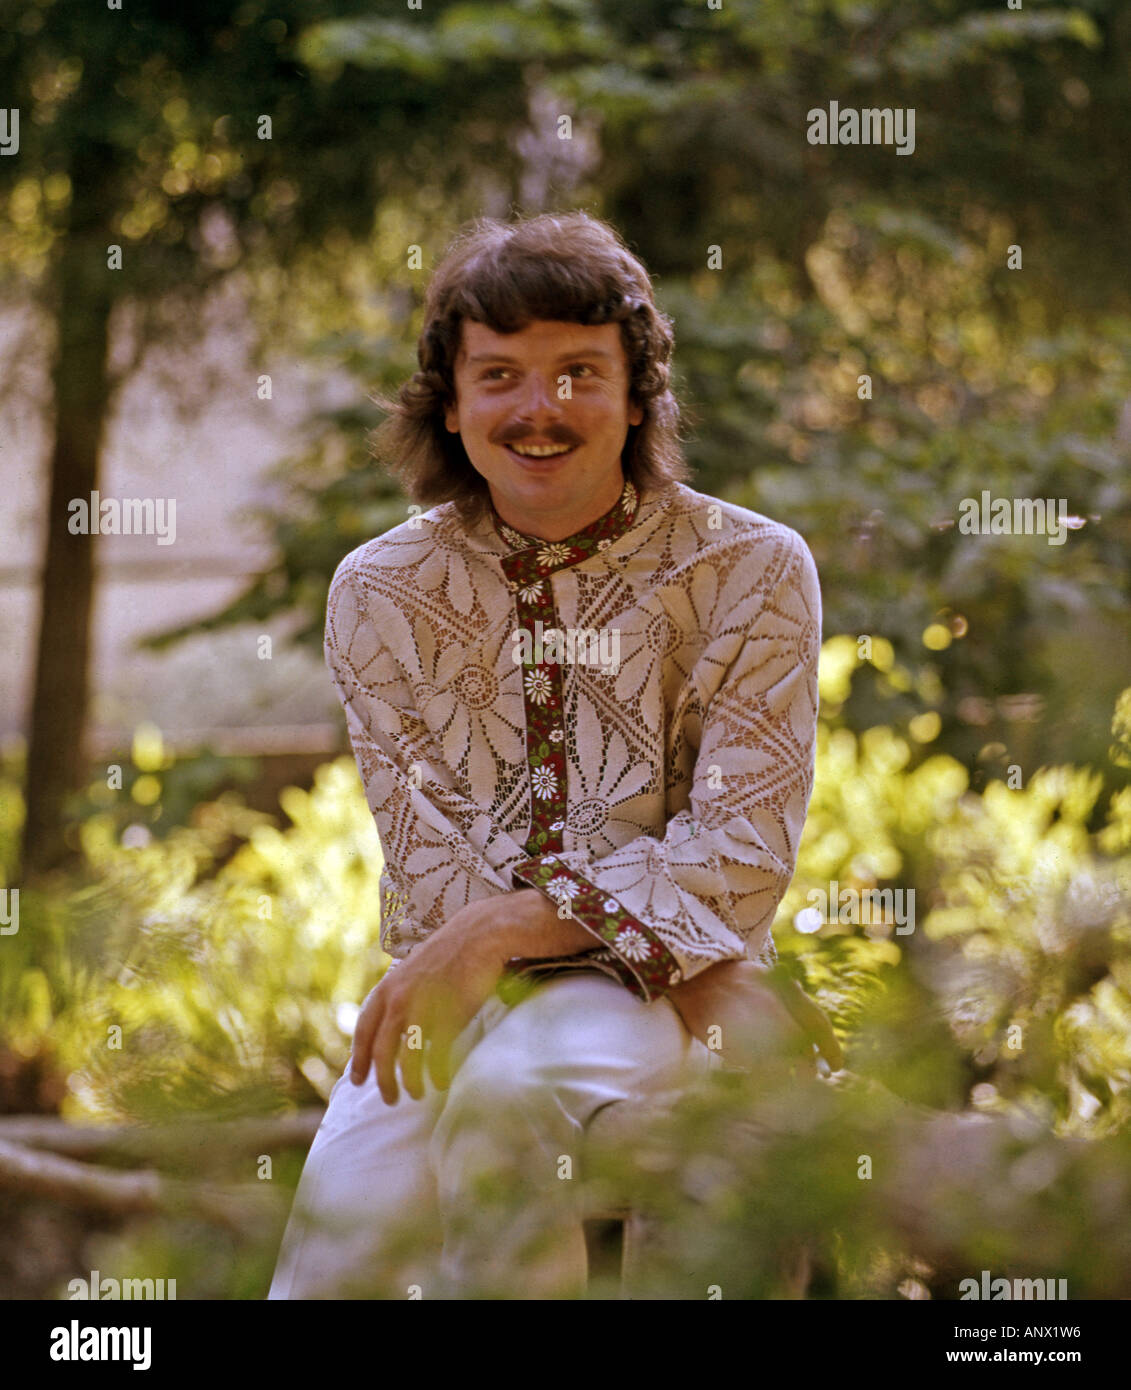 Scott Mckenzie Us Singer In 1967 When His Record San Francisco Was A Big Hit